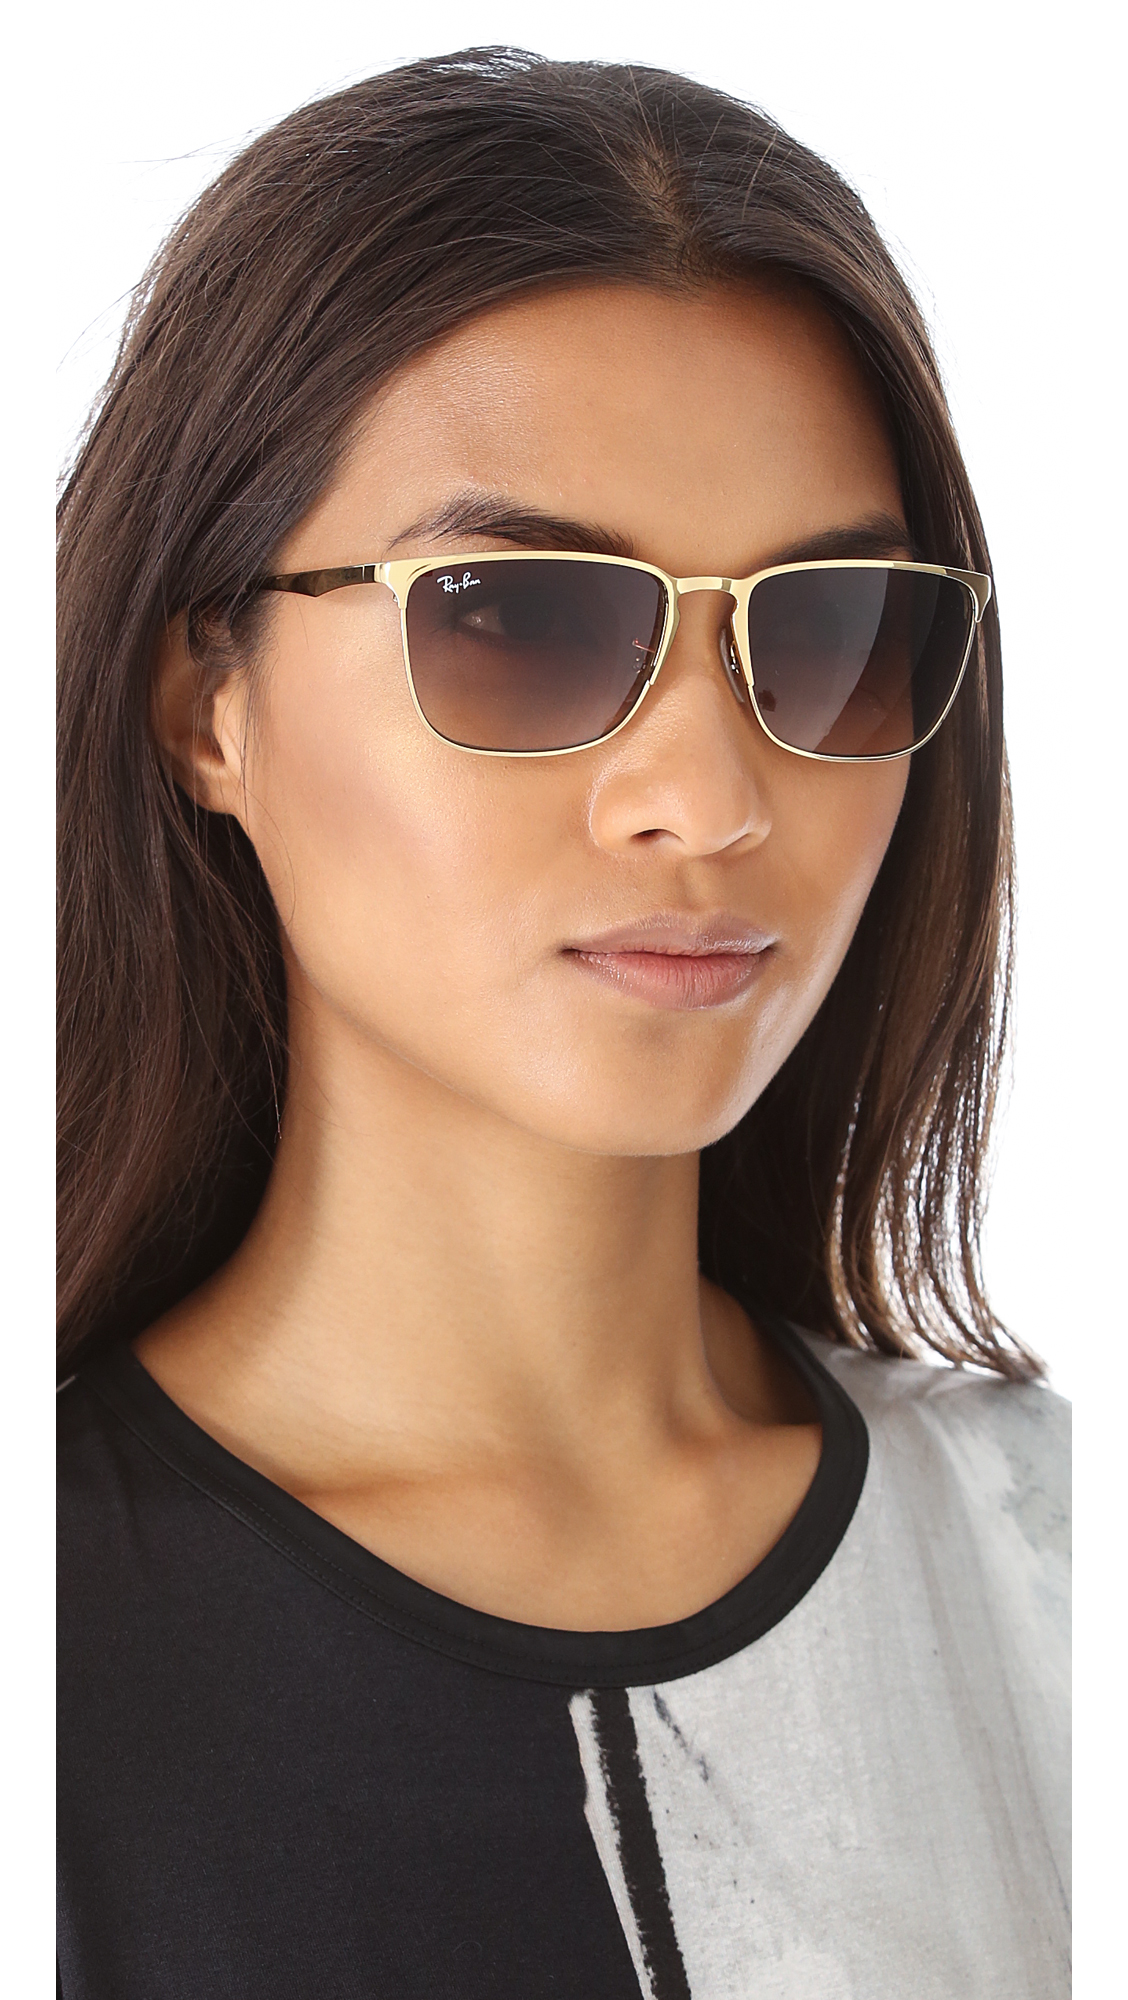 0903a51fb4 Ray-Ban Highstreet Square Sunglasses in Brown - Lyst